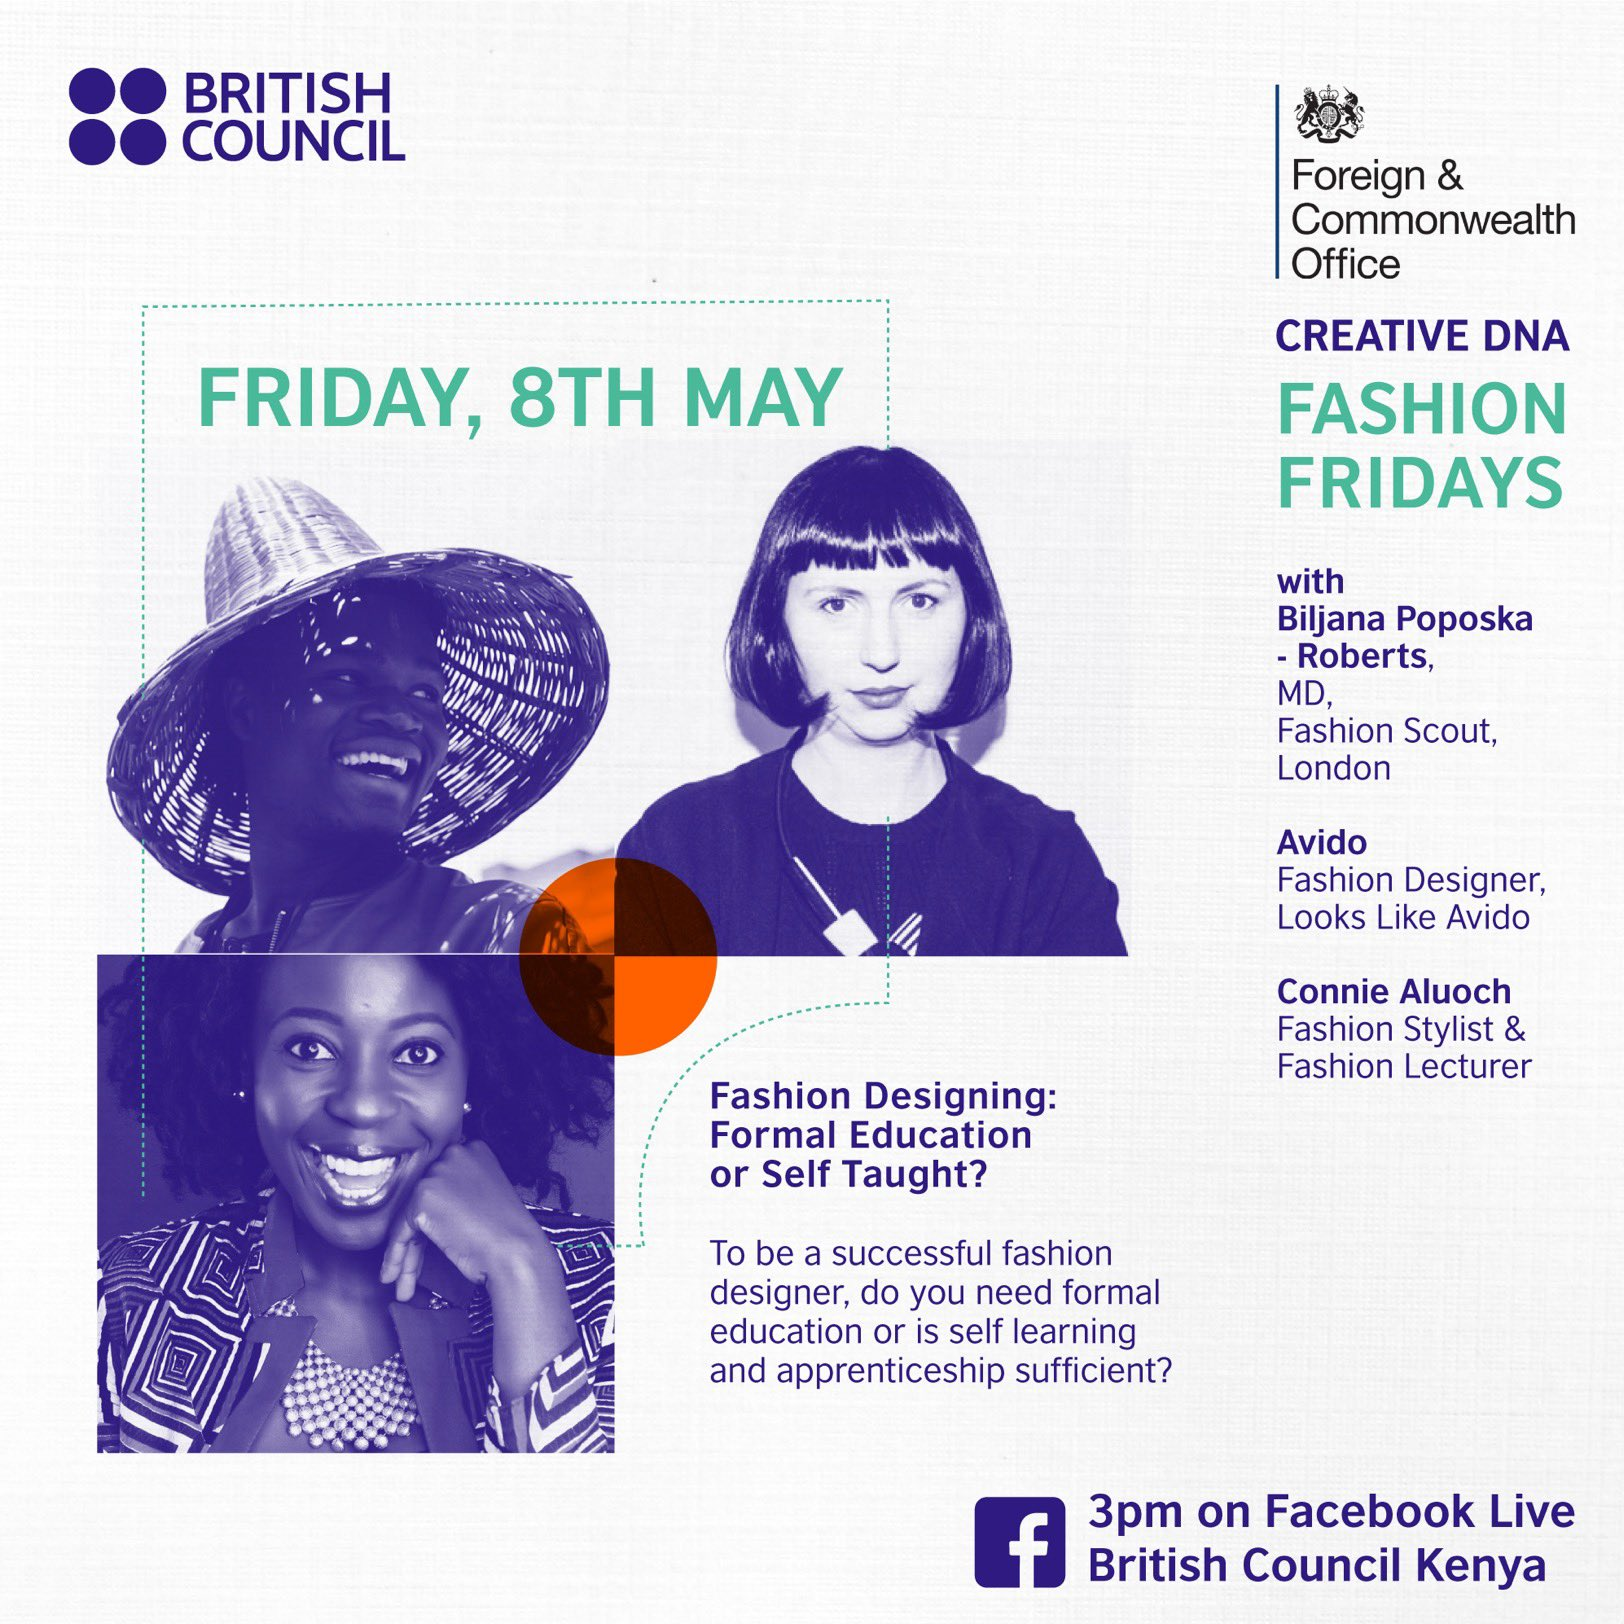 Africa Fashion Week London On Twitter British Council Kenya Is Hosting Fashion Fridays Facebook Live Sessions Join Them Today As They Talk About Fashion Designing Do You Need Formal Education Or Is